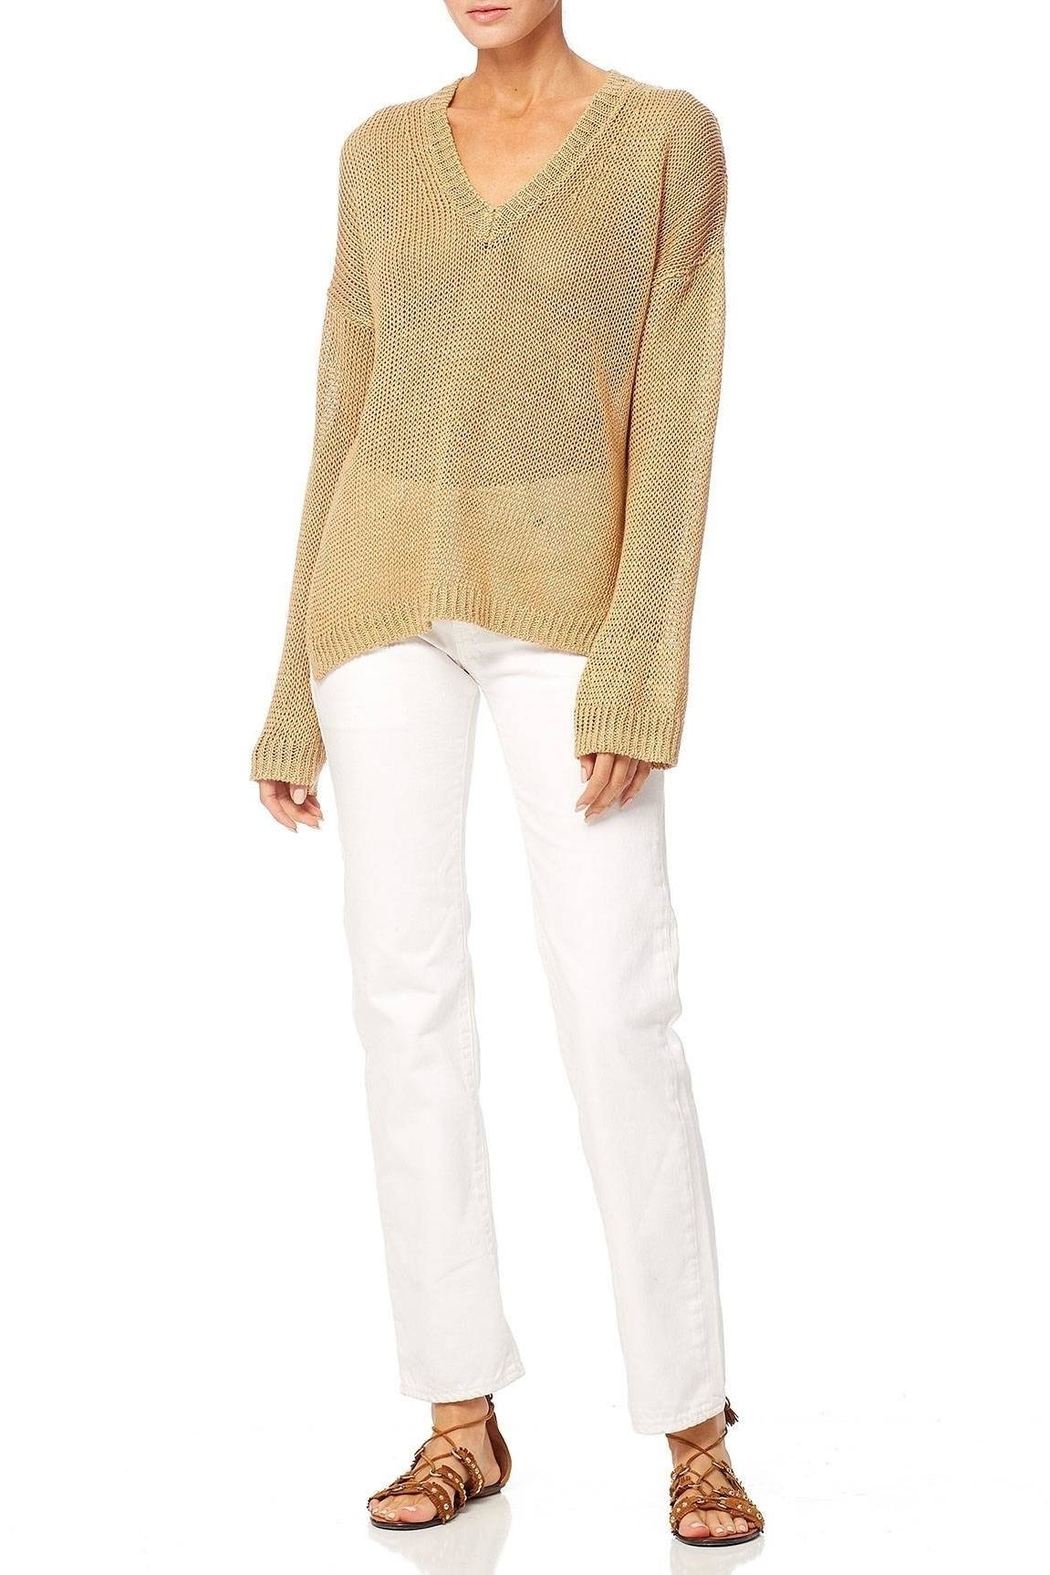 360 Cashmere Noelle Sweater - Side Cropped Image